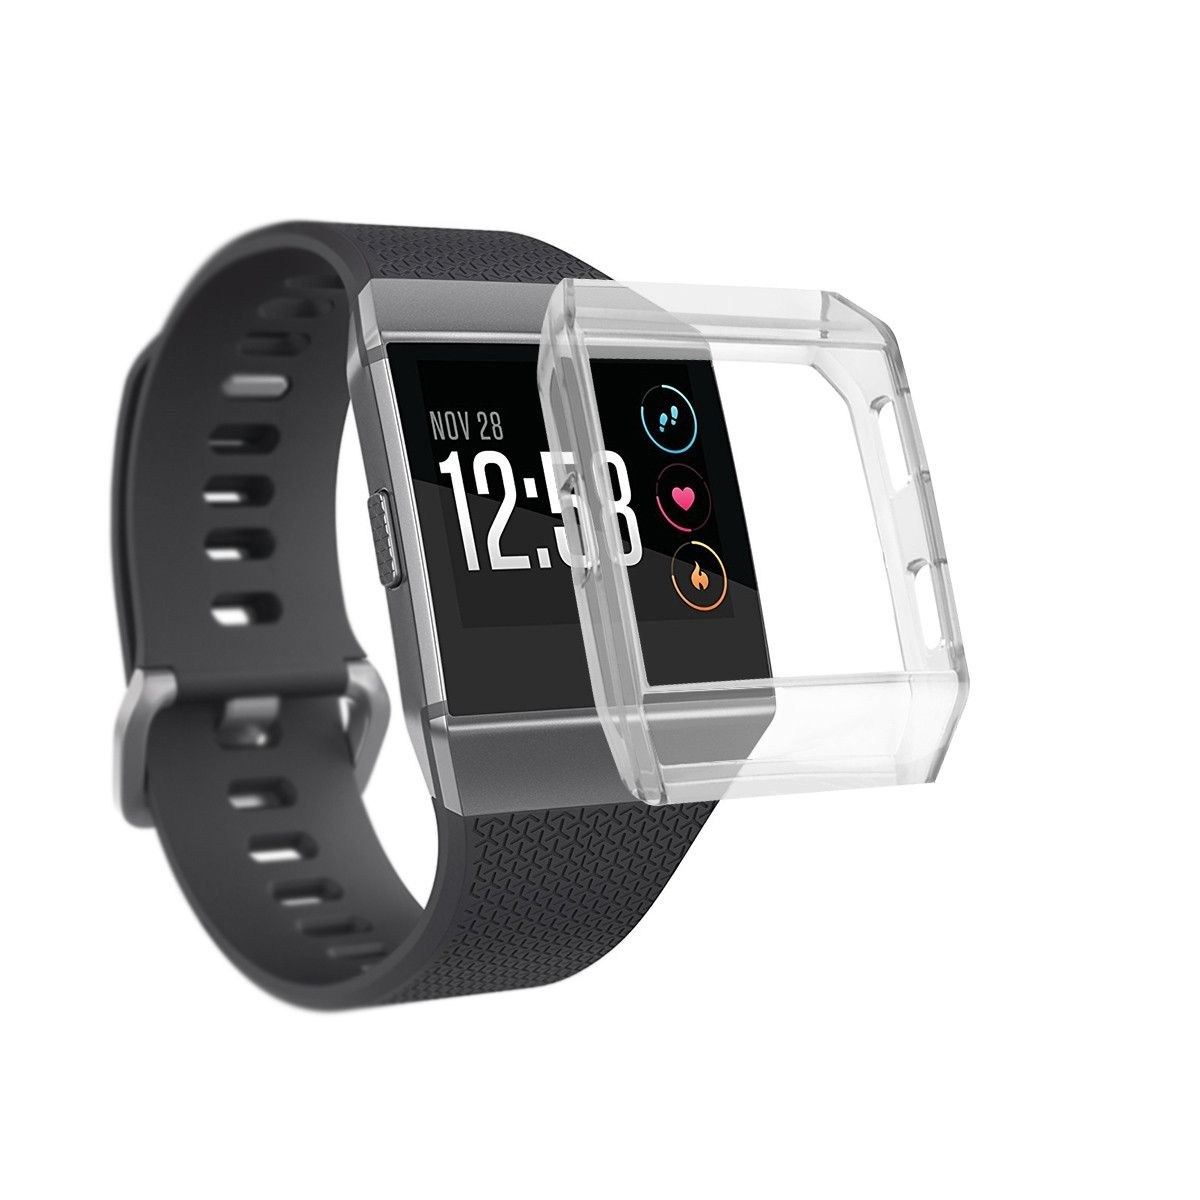 535124e72 Generic husksp Replacement Ultra-Slim Transparent TPU Protect Case Cover  For Fitbit Ionic. 34.40. جنية مصرى